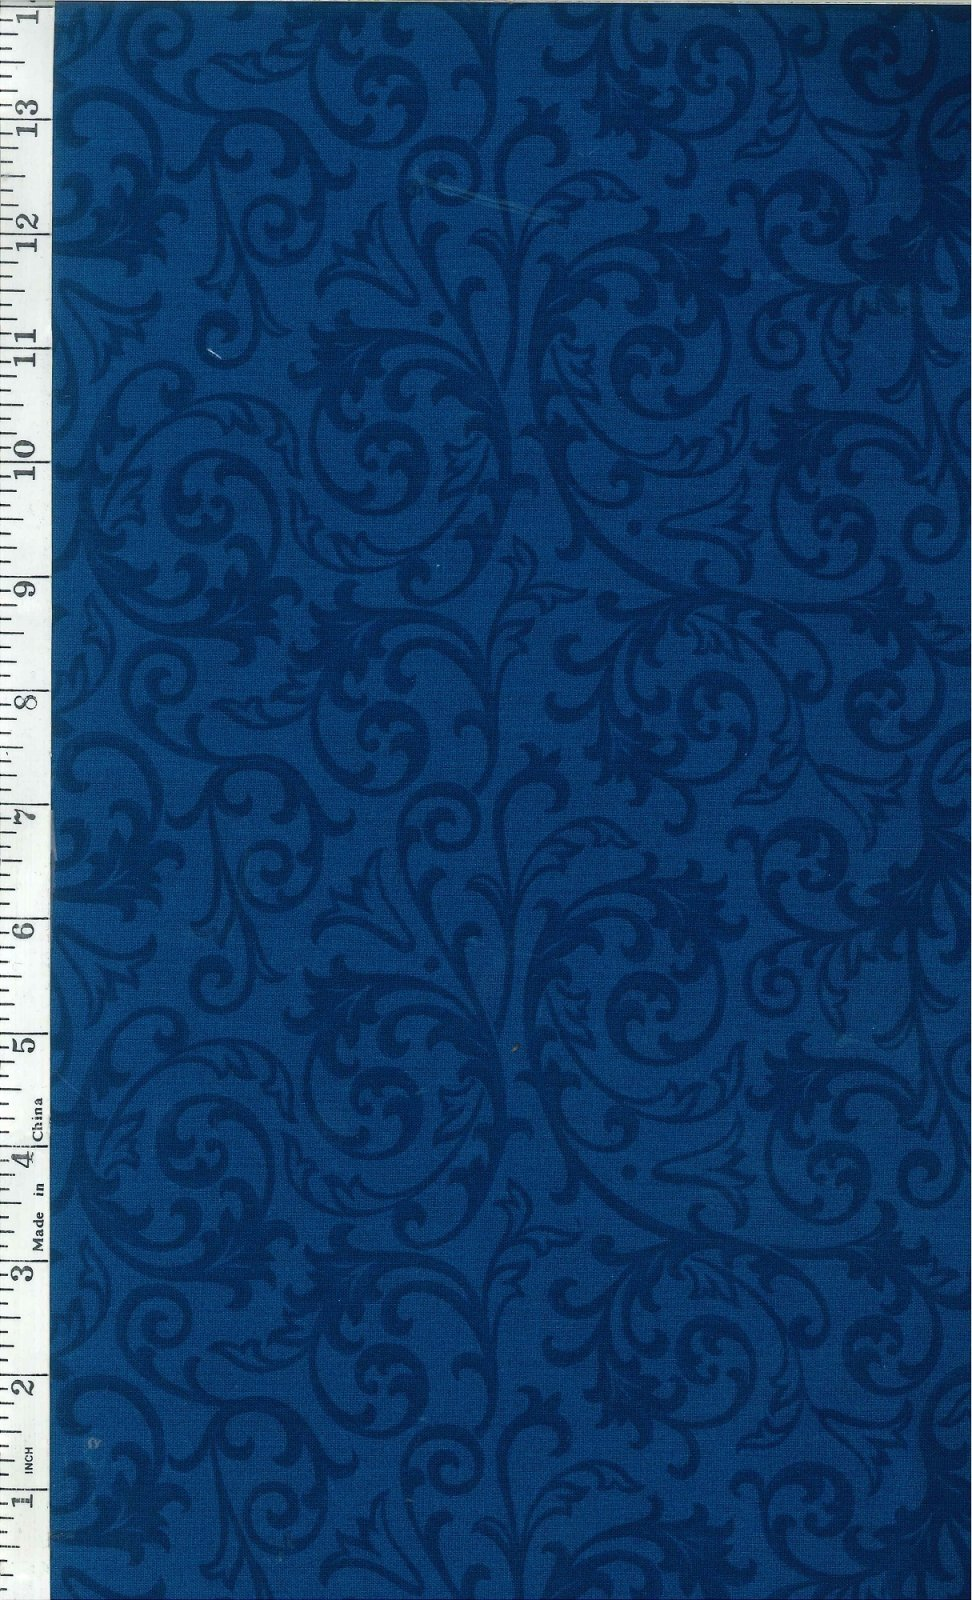 Wide Backing Fabric - Blue Scroll Wide Backing